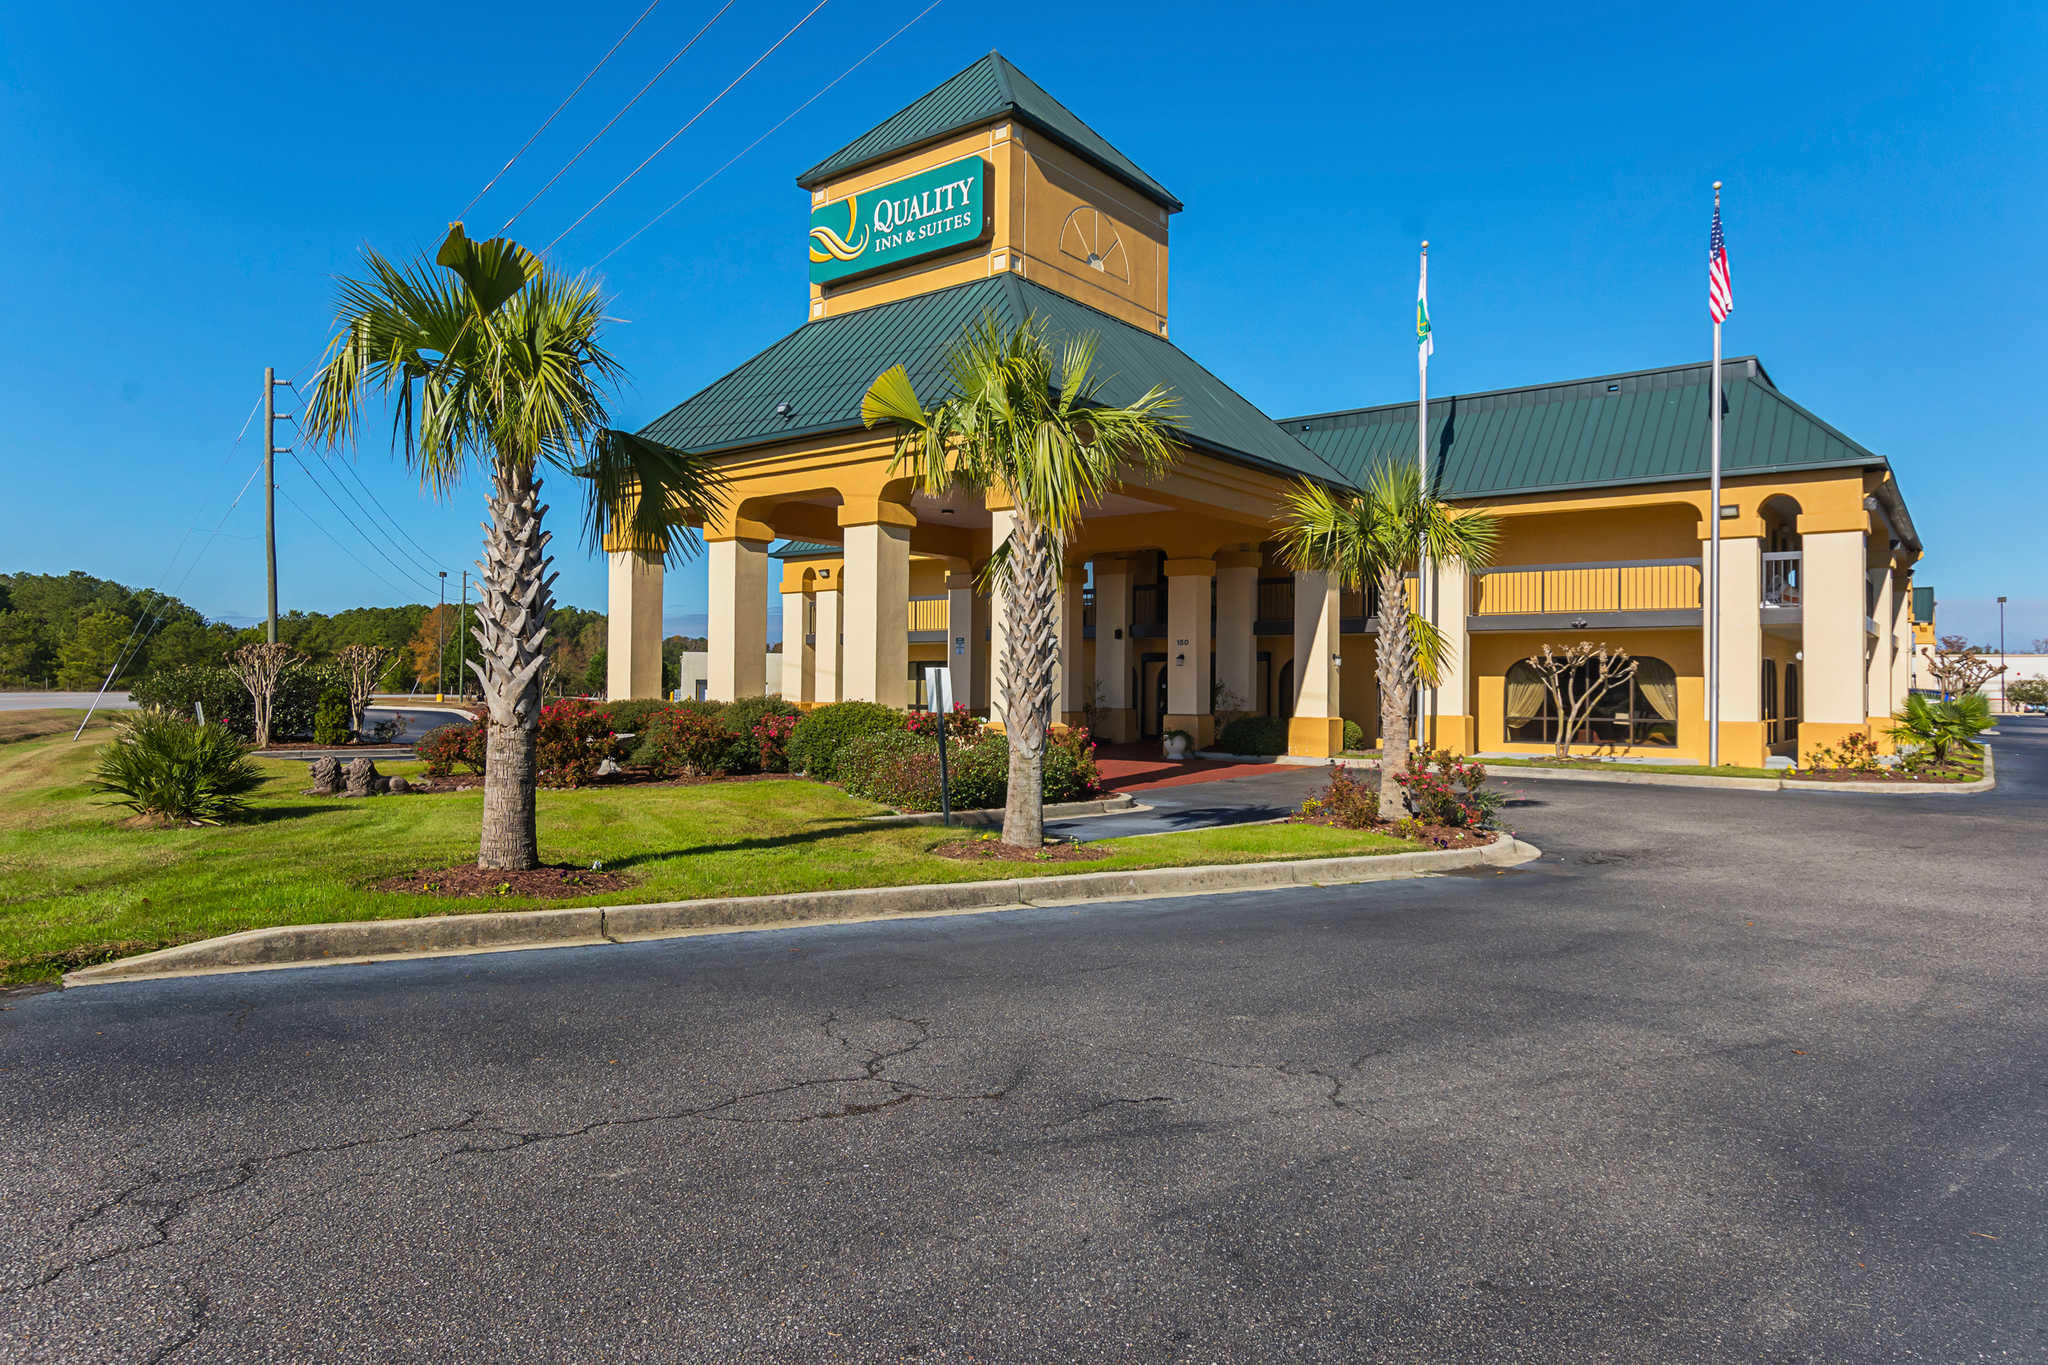 Quality inn suites civic center florence south carolina for Quality hotel